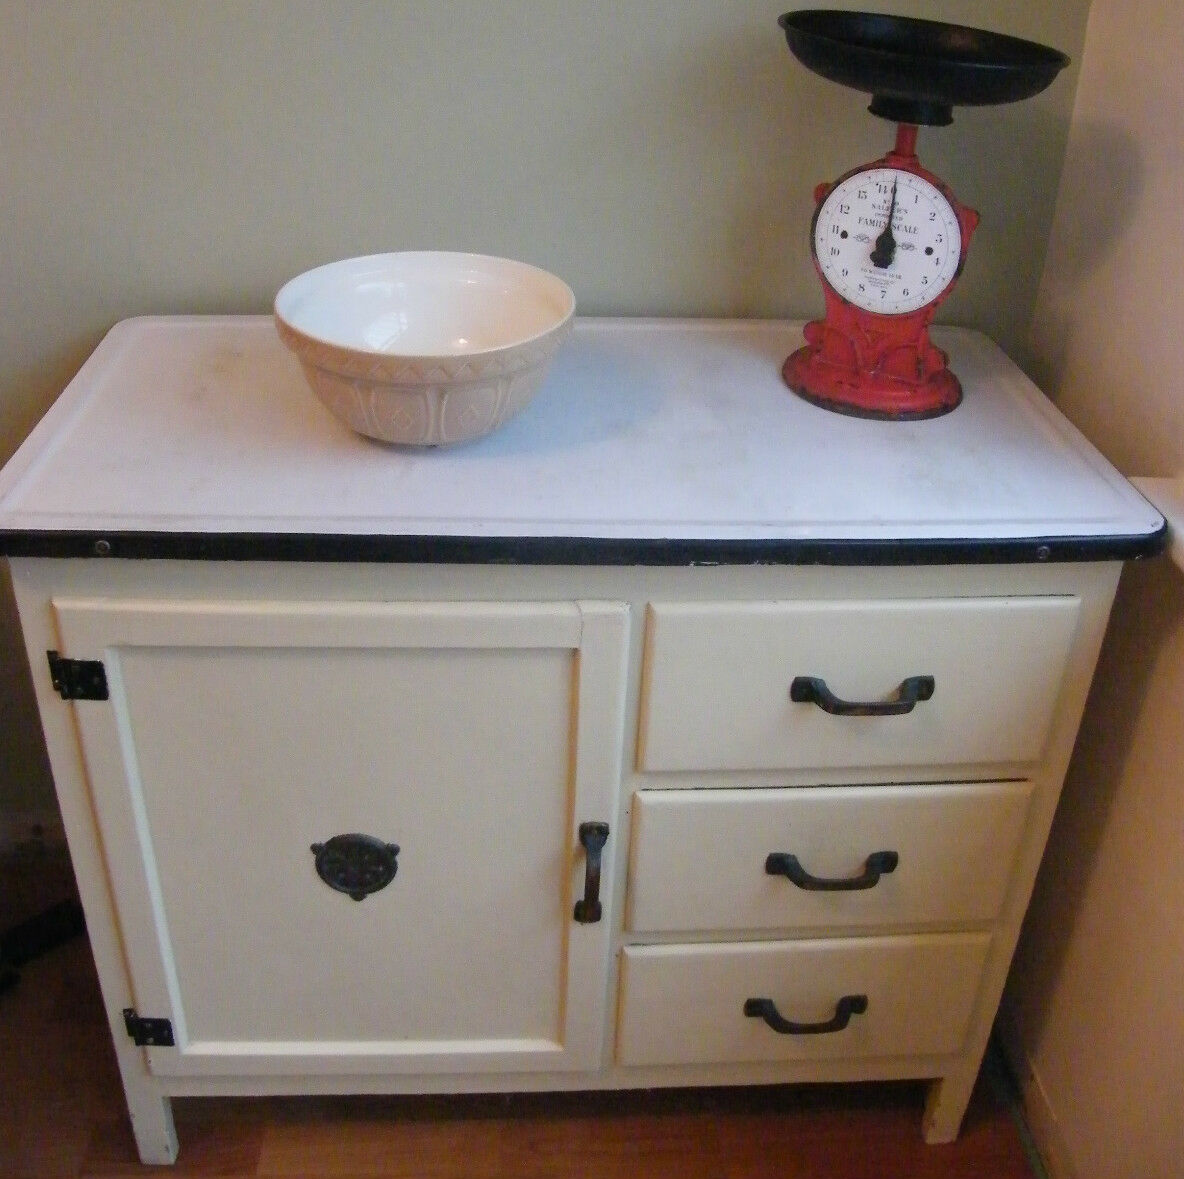 VINTAGE EMANEL TOP KITCHEN UINT CANINET CUPBOARD 30s 40s shabby CHIC